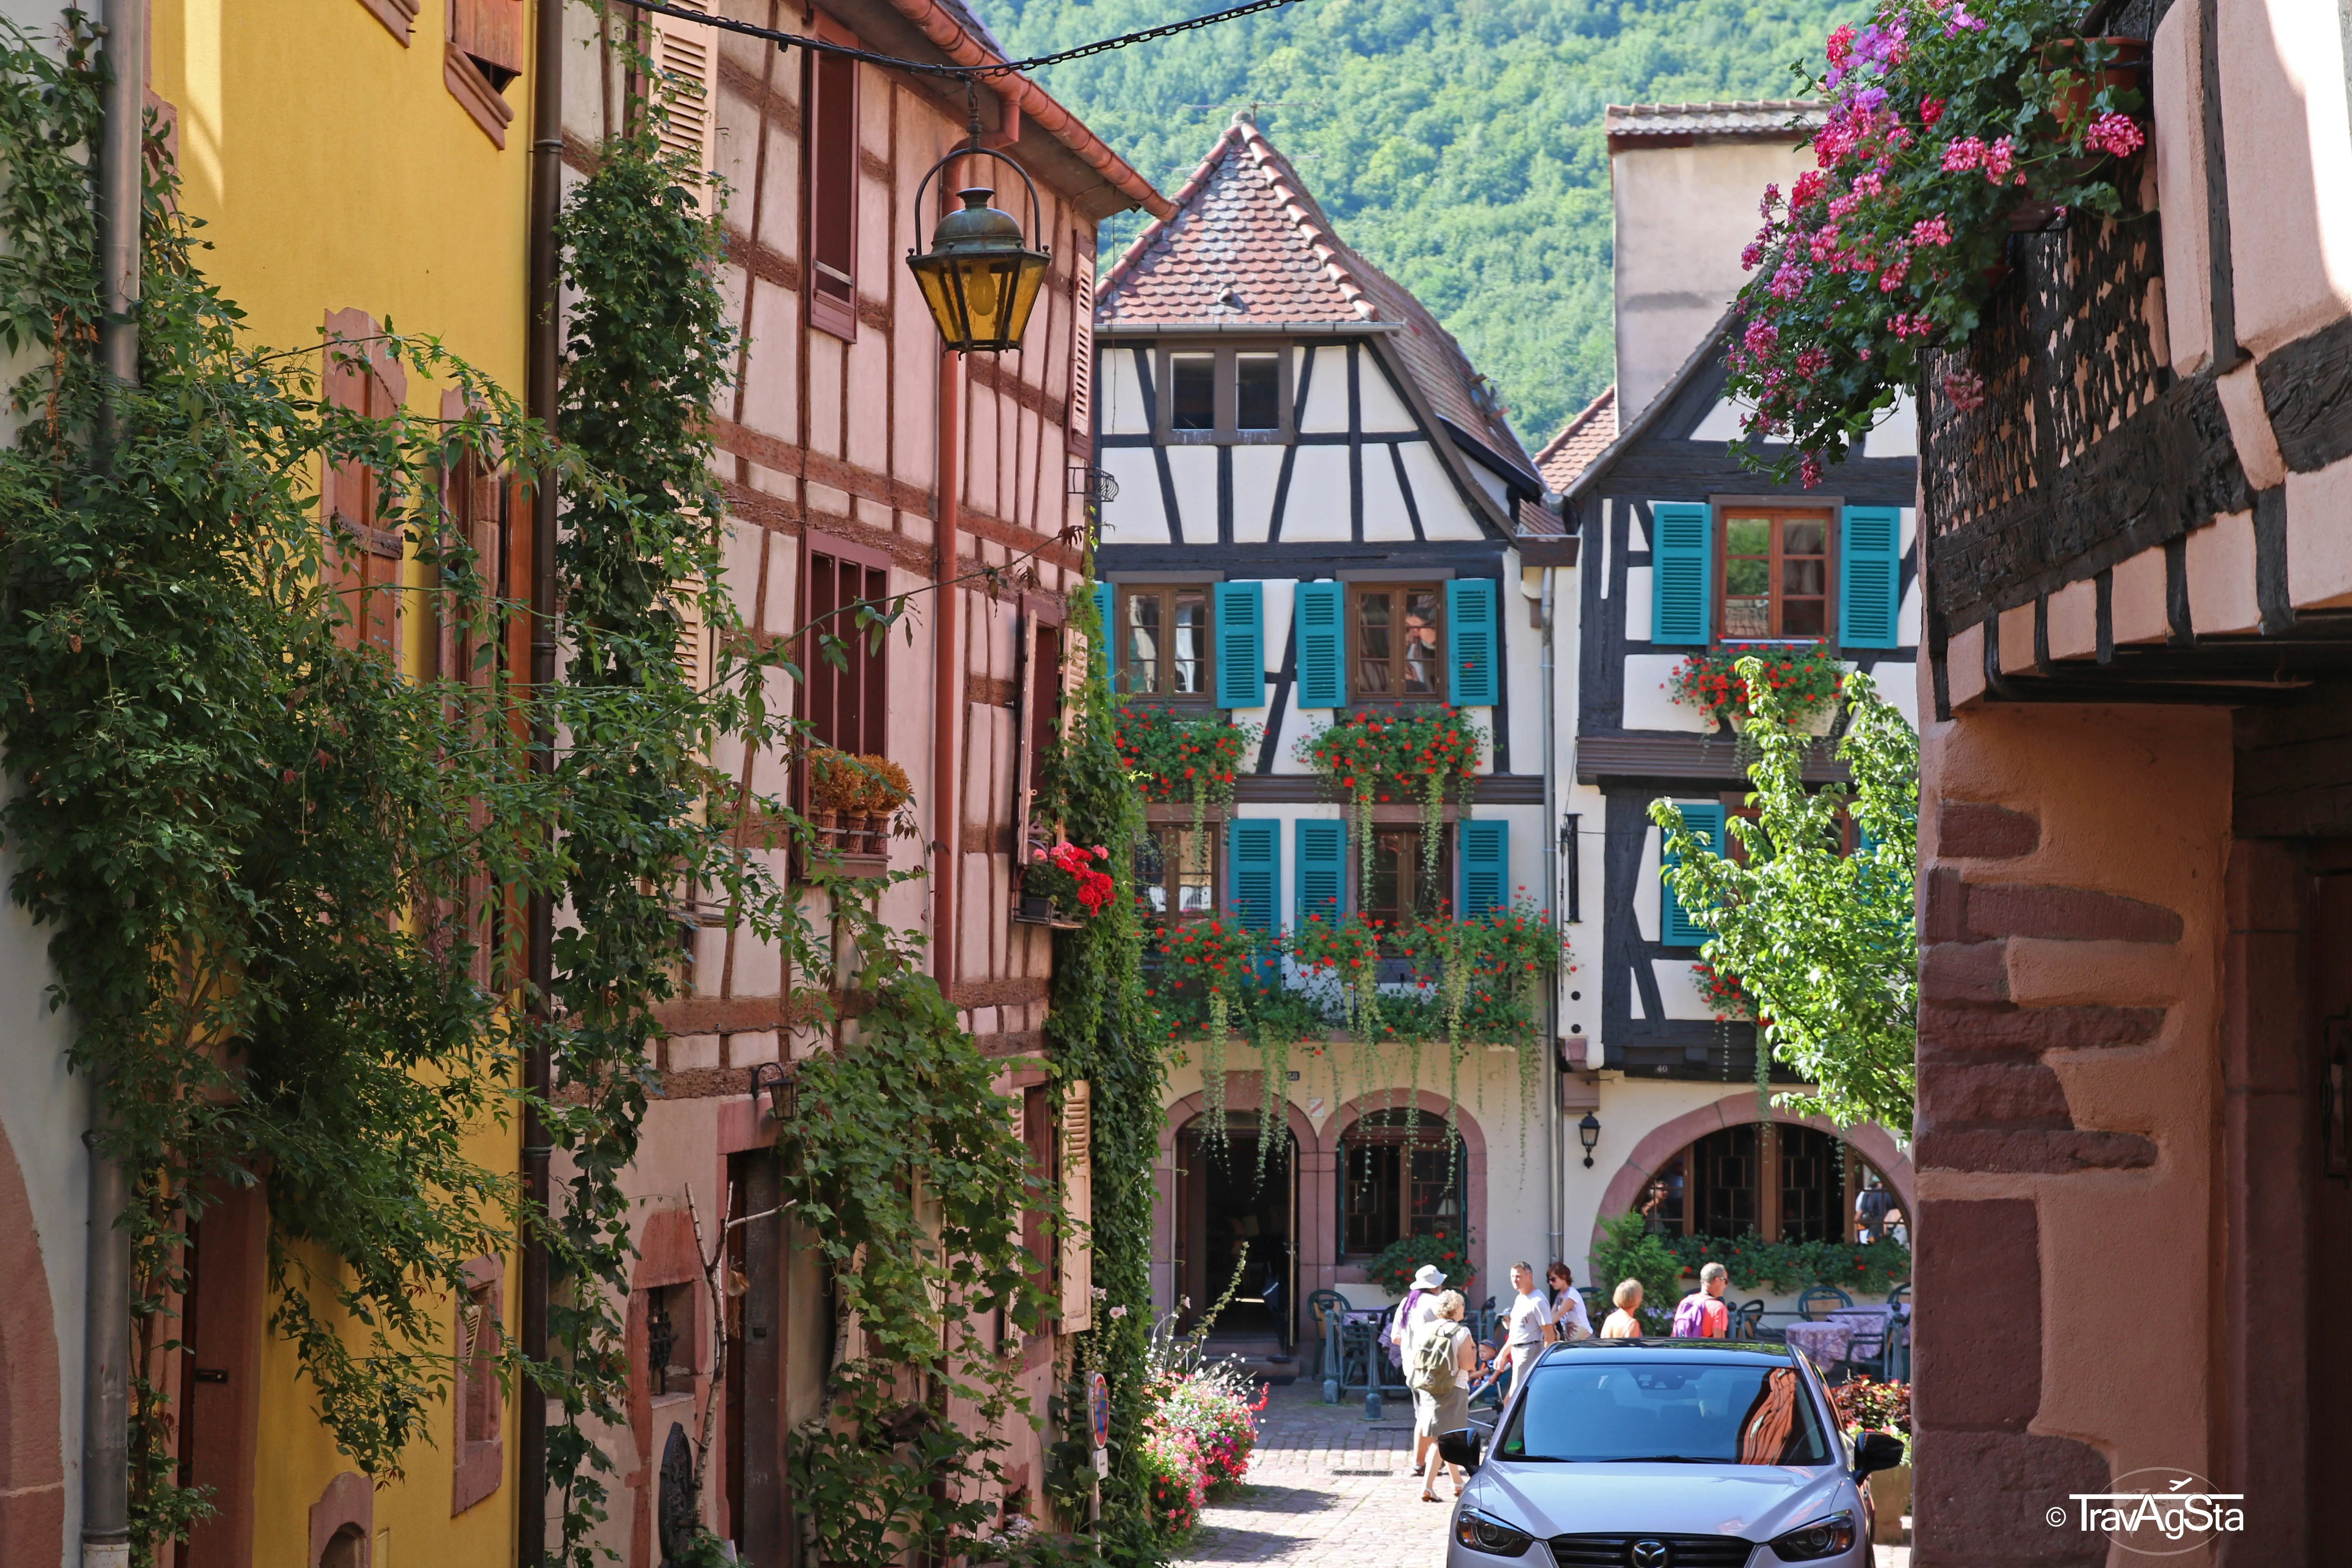 Half timbered houses in Europe!